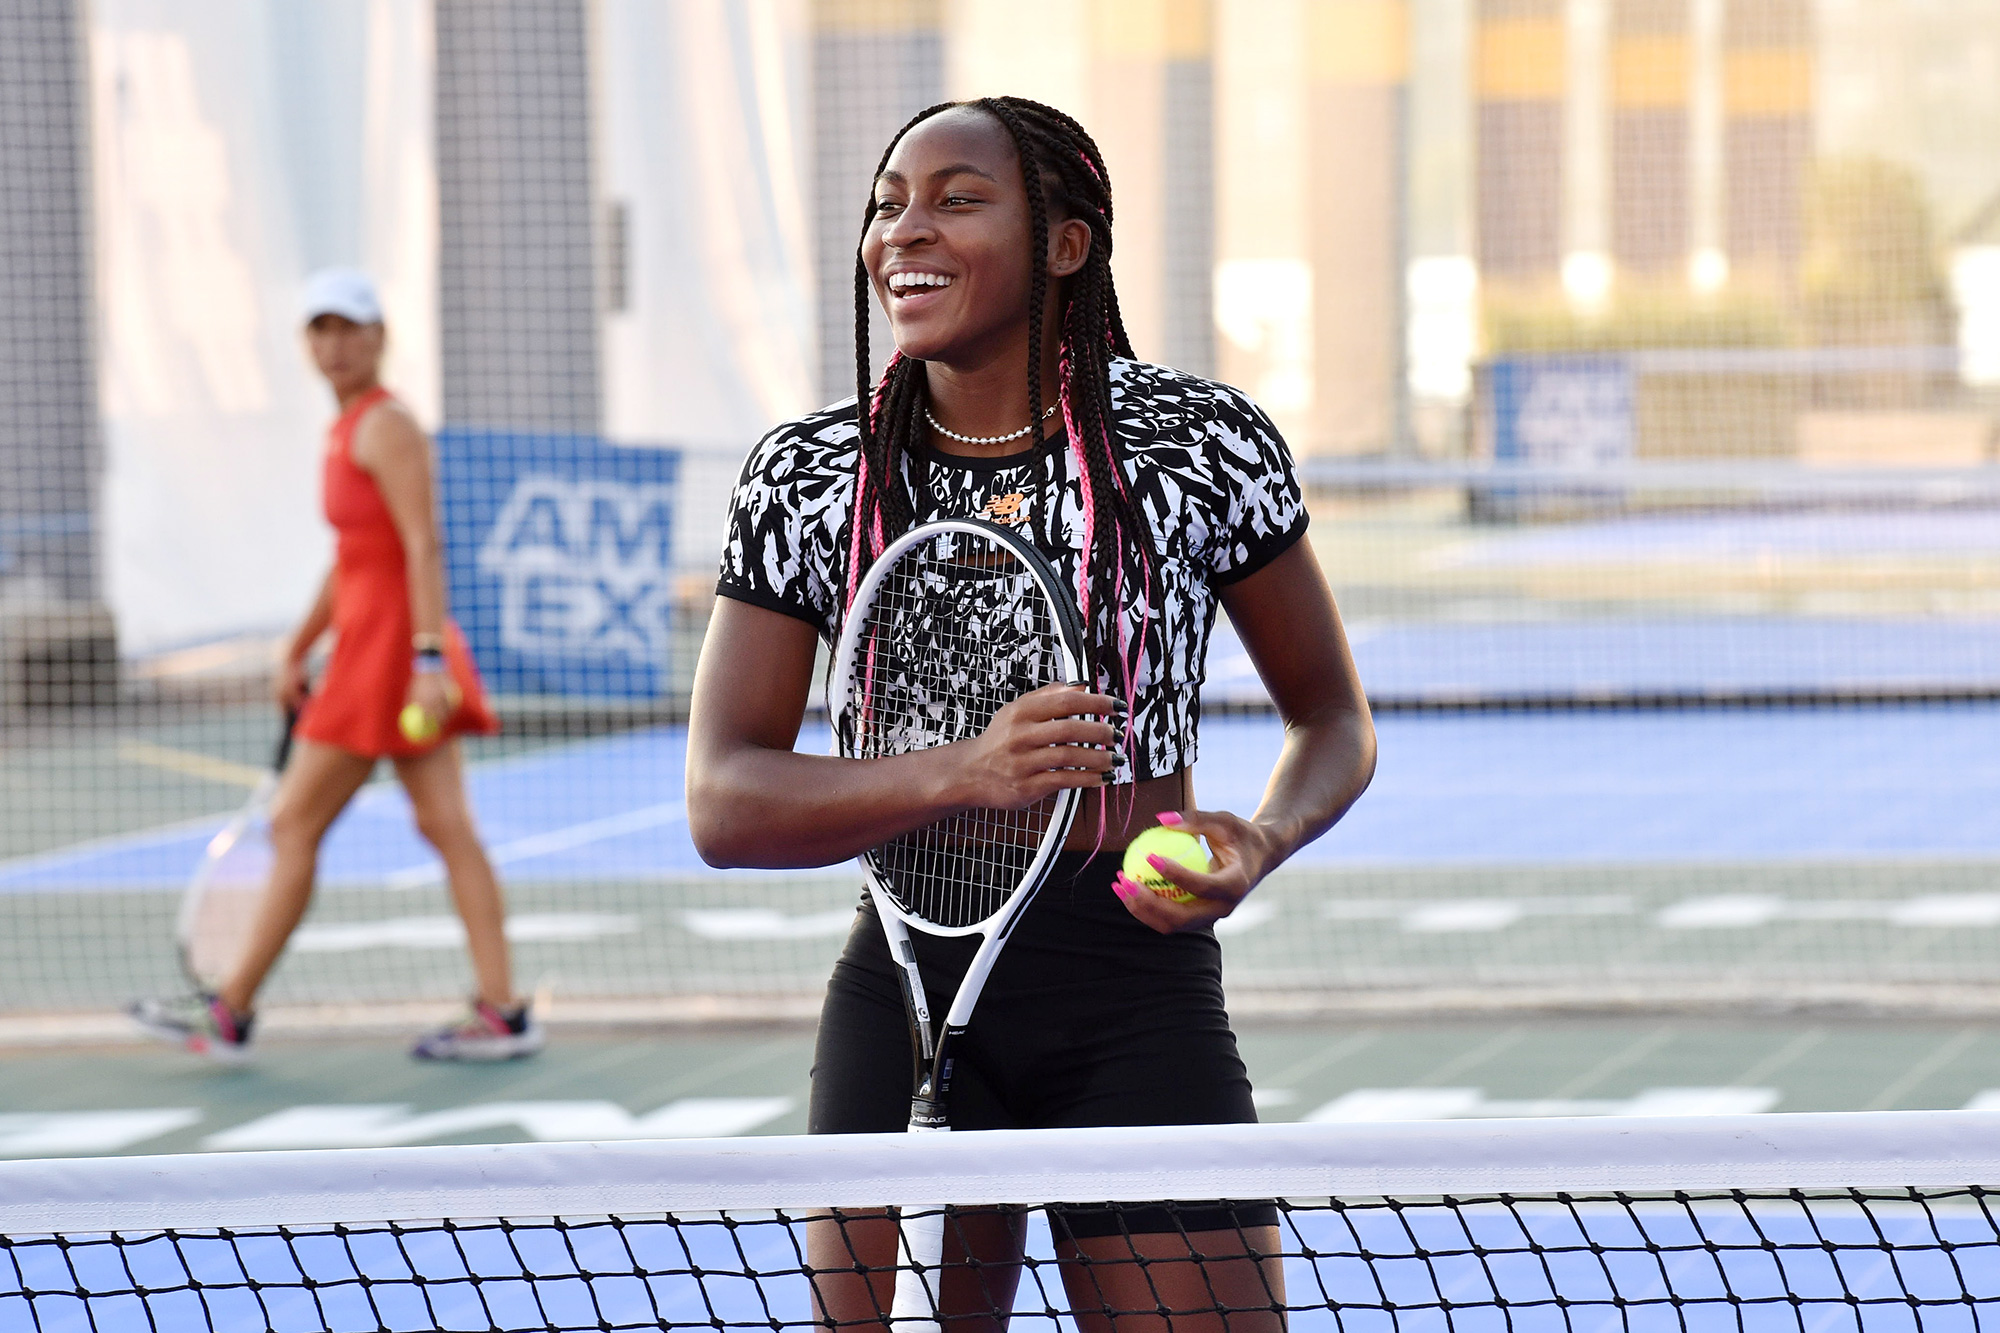 American tennis player Coco Gauff attends as the American Express Courts are unveiled ahead of 2021 US Open Tennis Tournament at Hudson River Park's Pier 76 on August 24, 2021 in New York City.